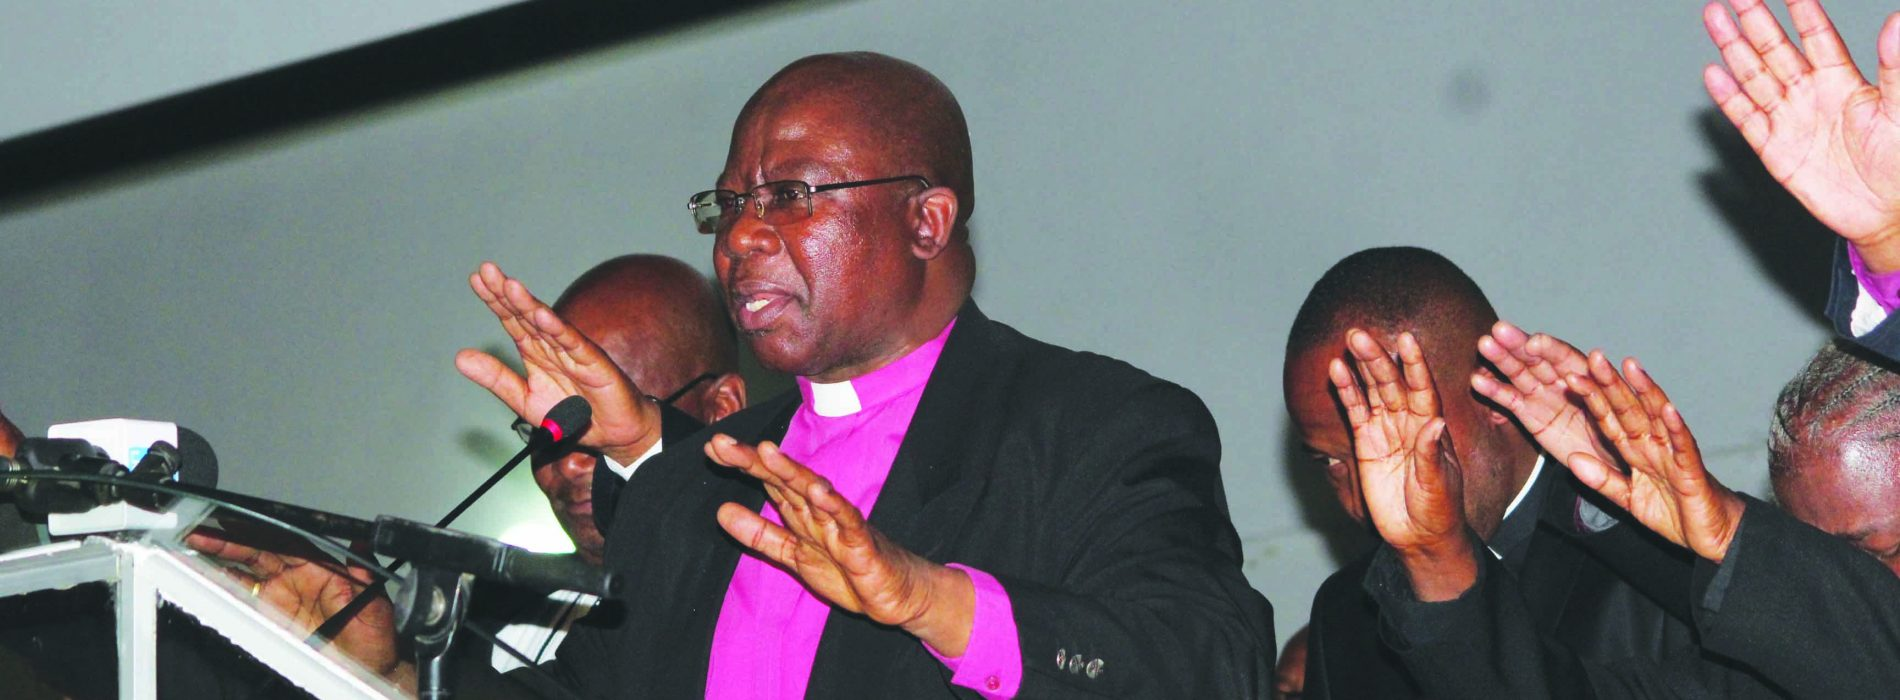 Power struggle will hurt coronavirus battle, says church